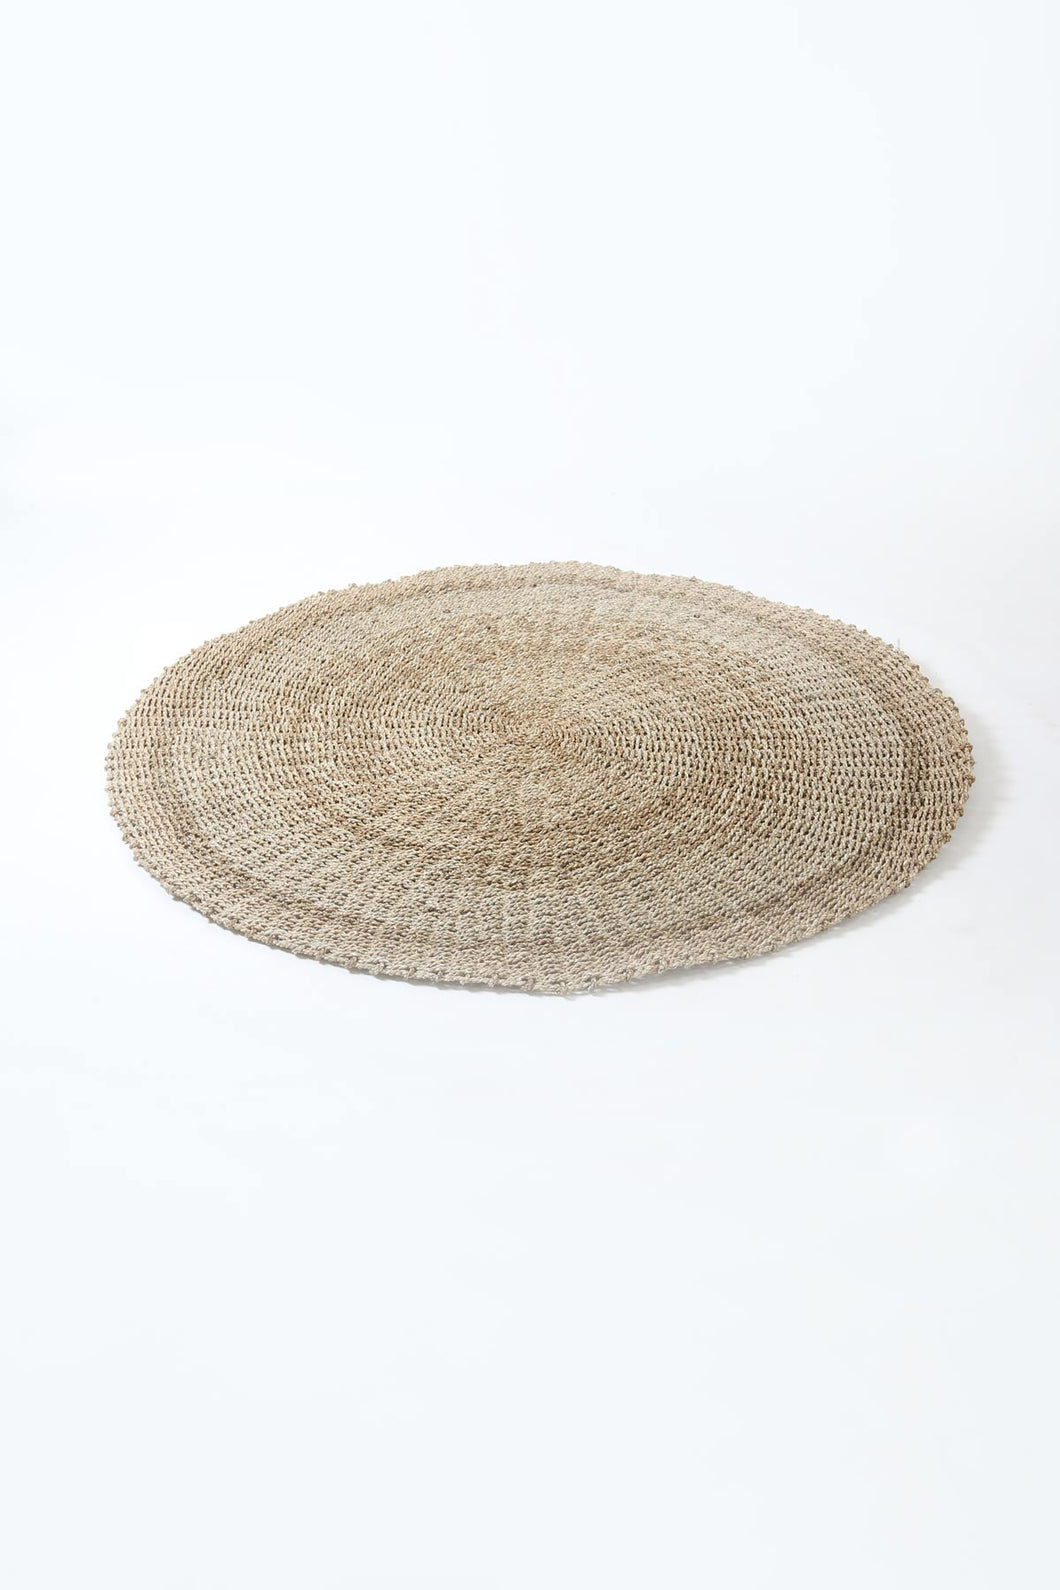 Round Natural Twisted Jute Rope Mat/Floor Rug